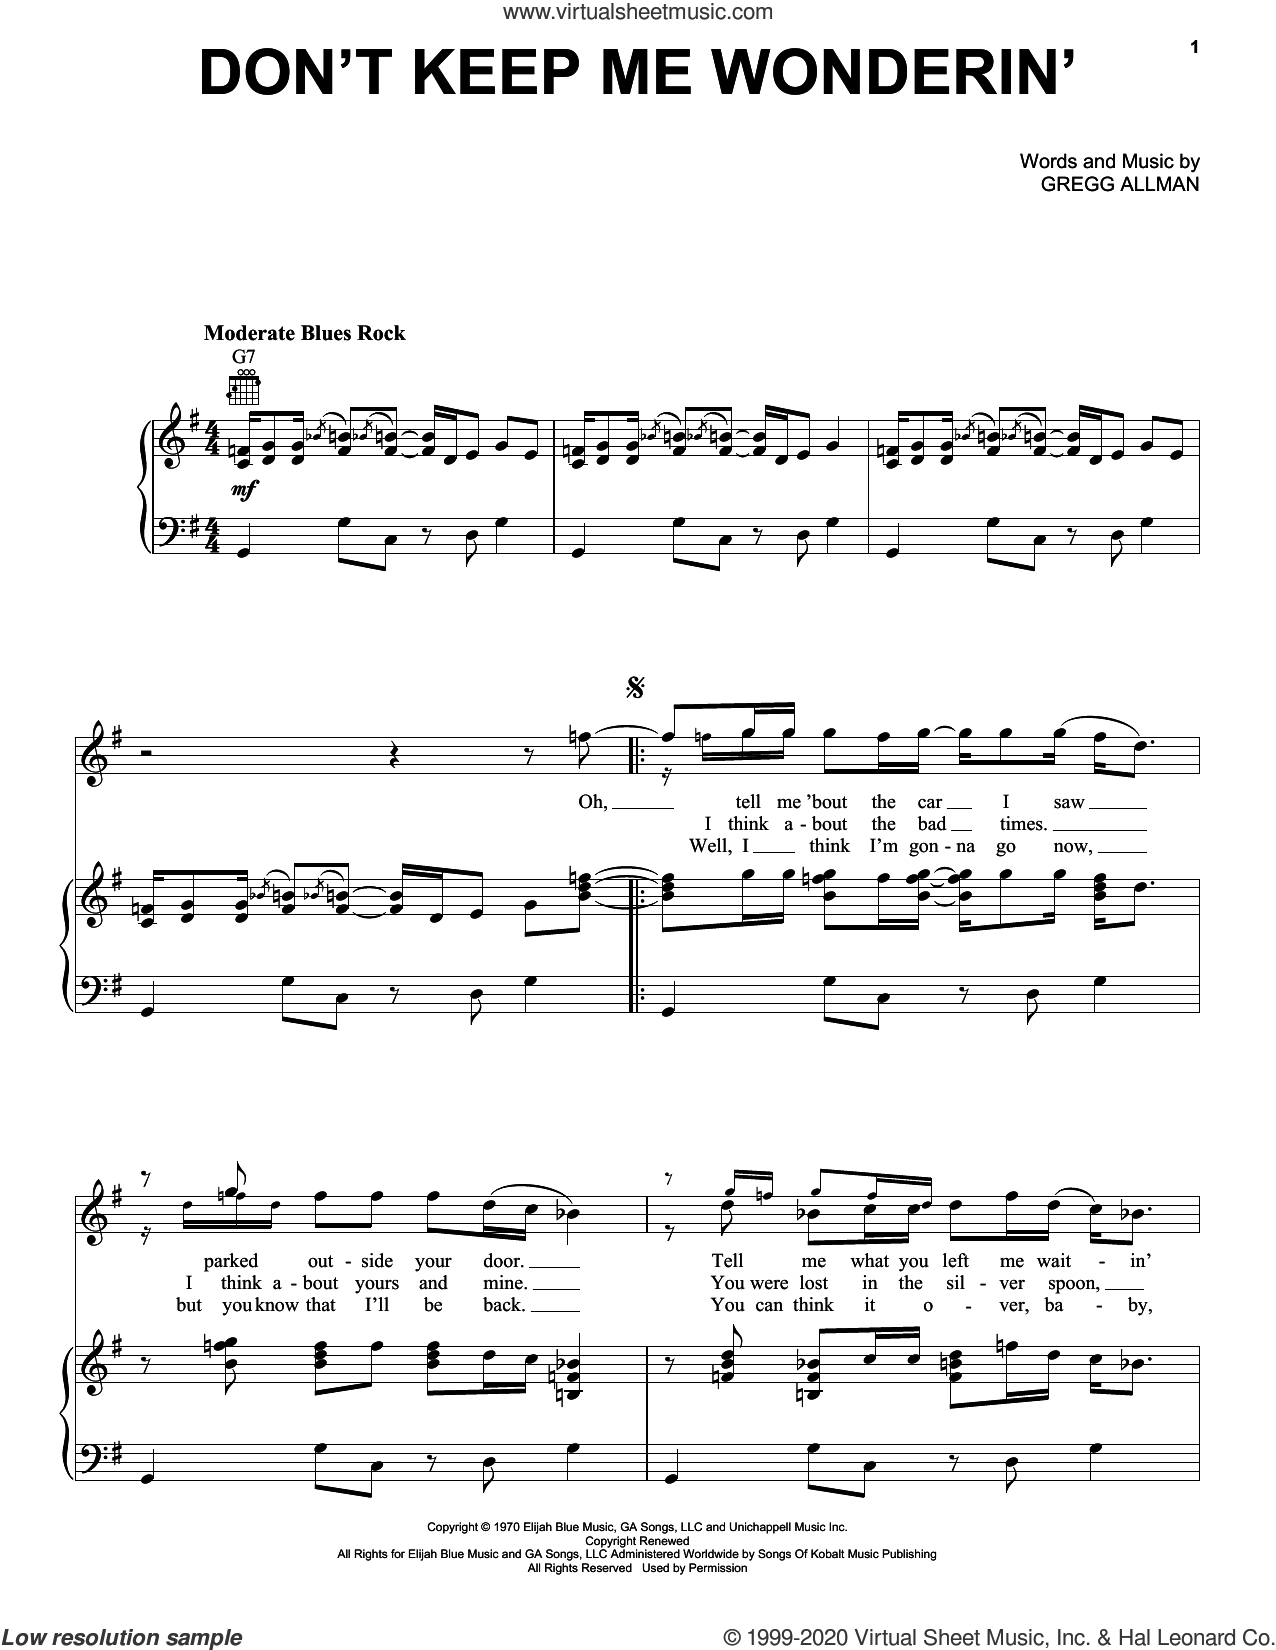 Don't Keep Me Wonderin' sheet music for voice, piano or guitar by The Allman Brothers Band and Gregg Allman, intermediate skill level